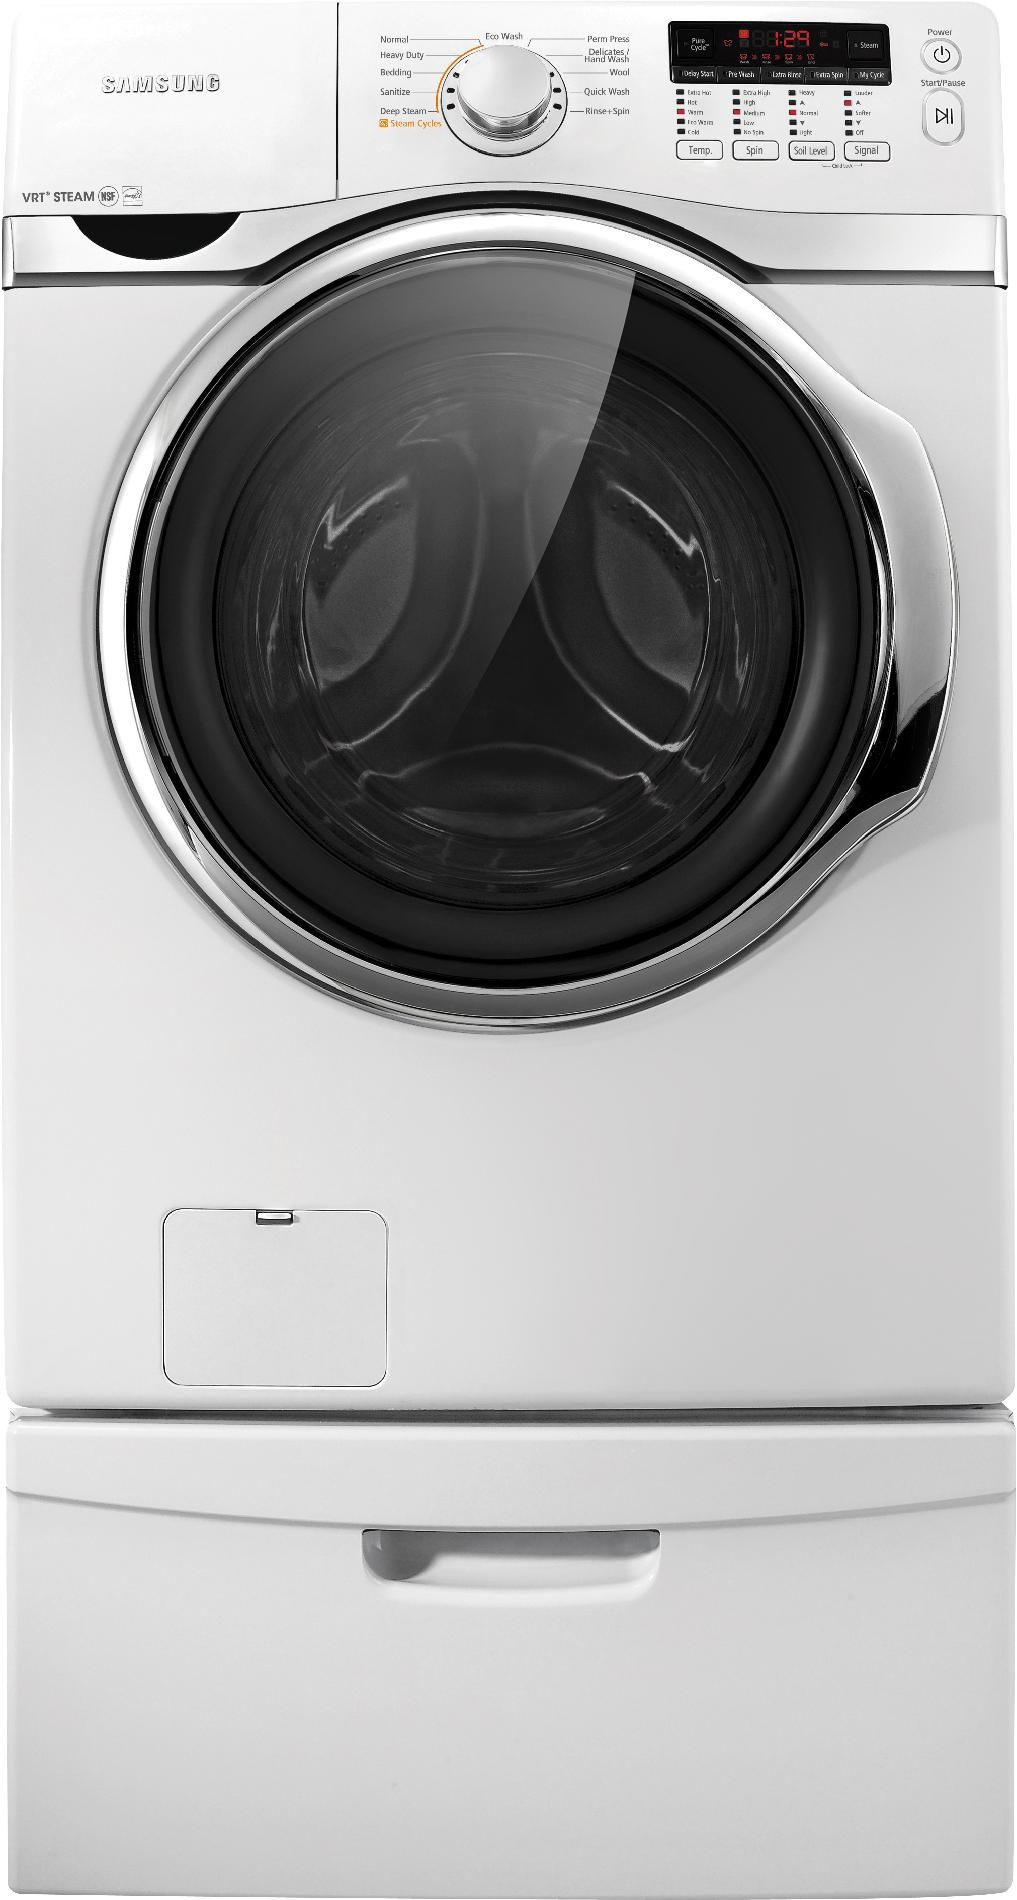 Samsung 3.9 cu. ft. Front-Load Washer - White